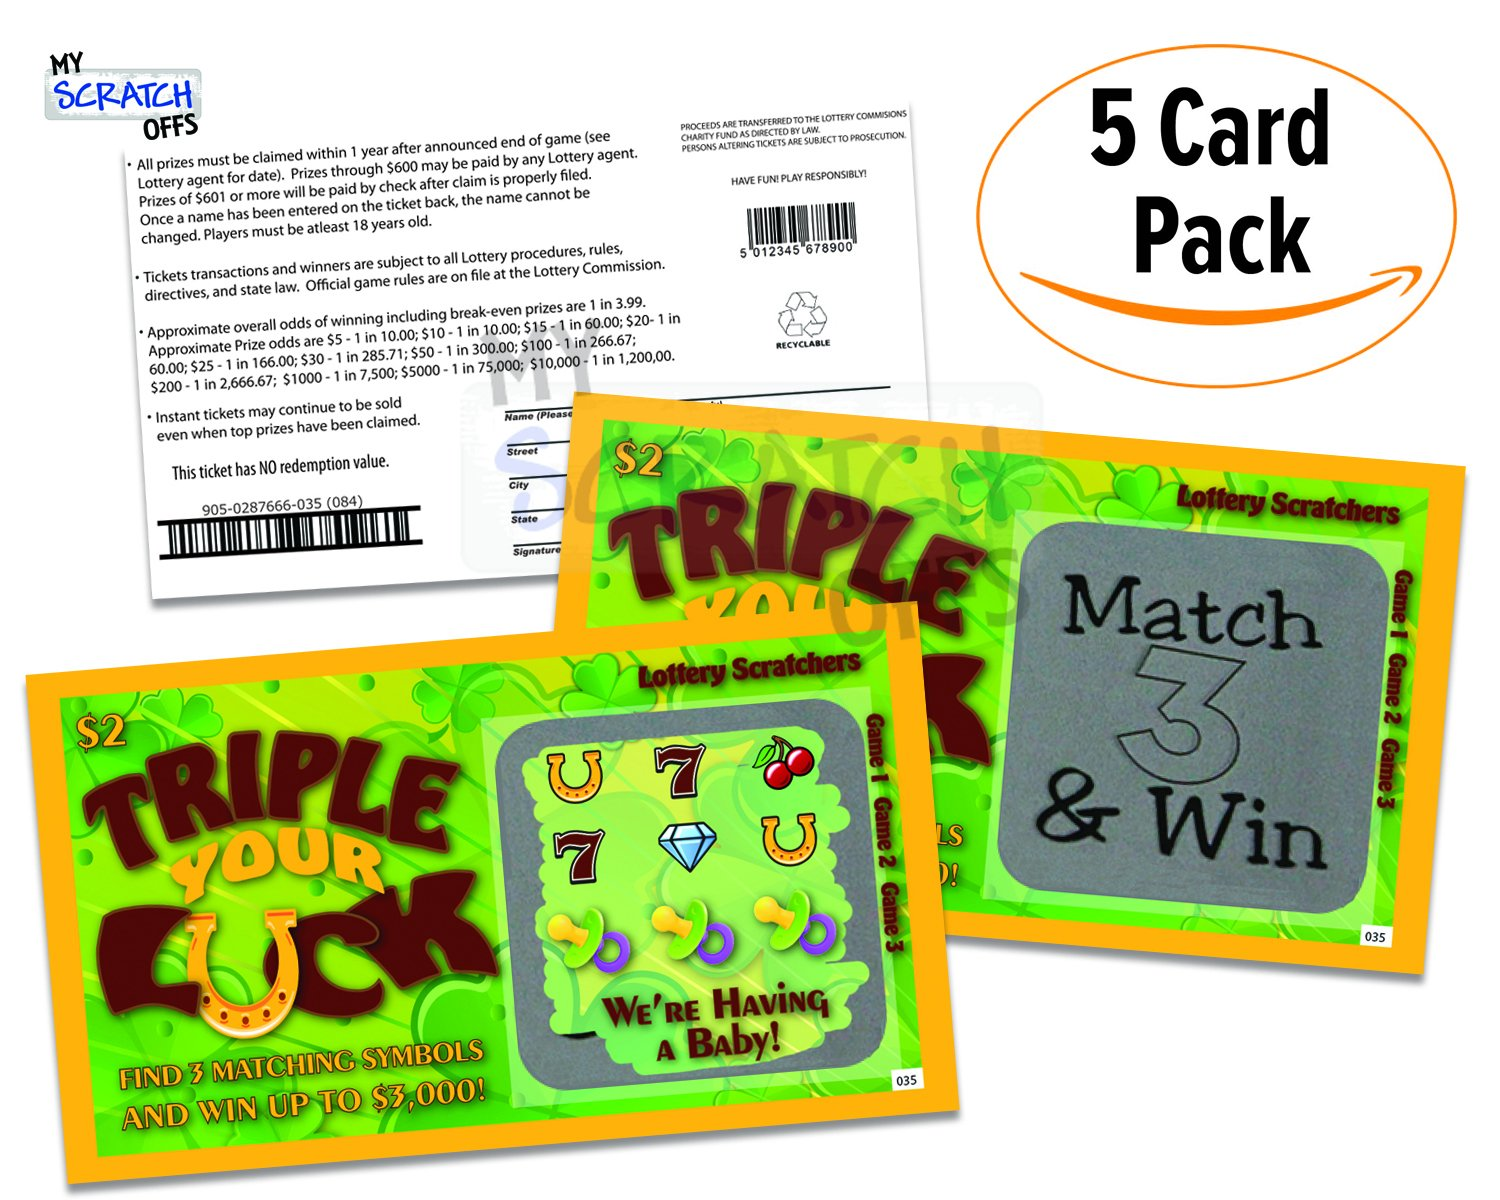 FAKE LOTTERY SCRATCH CARDS AMAZON